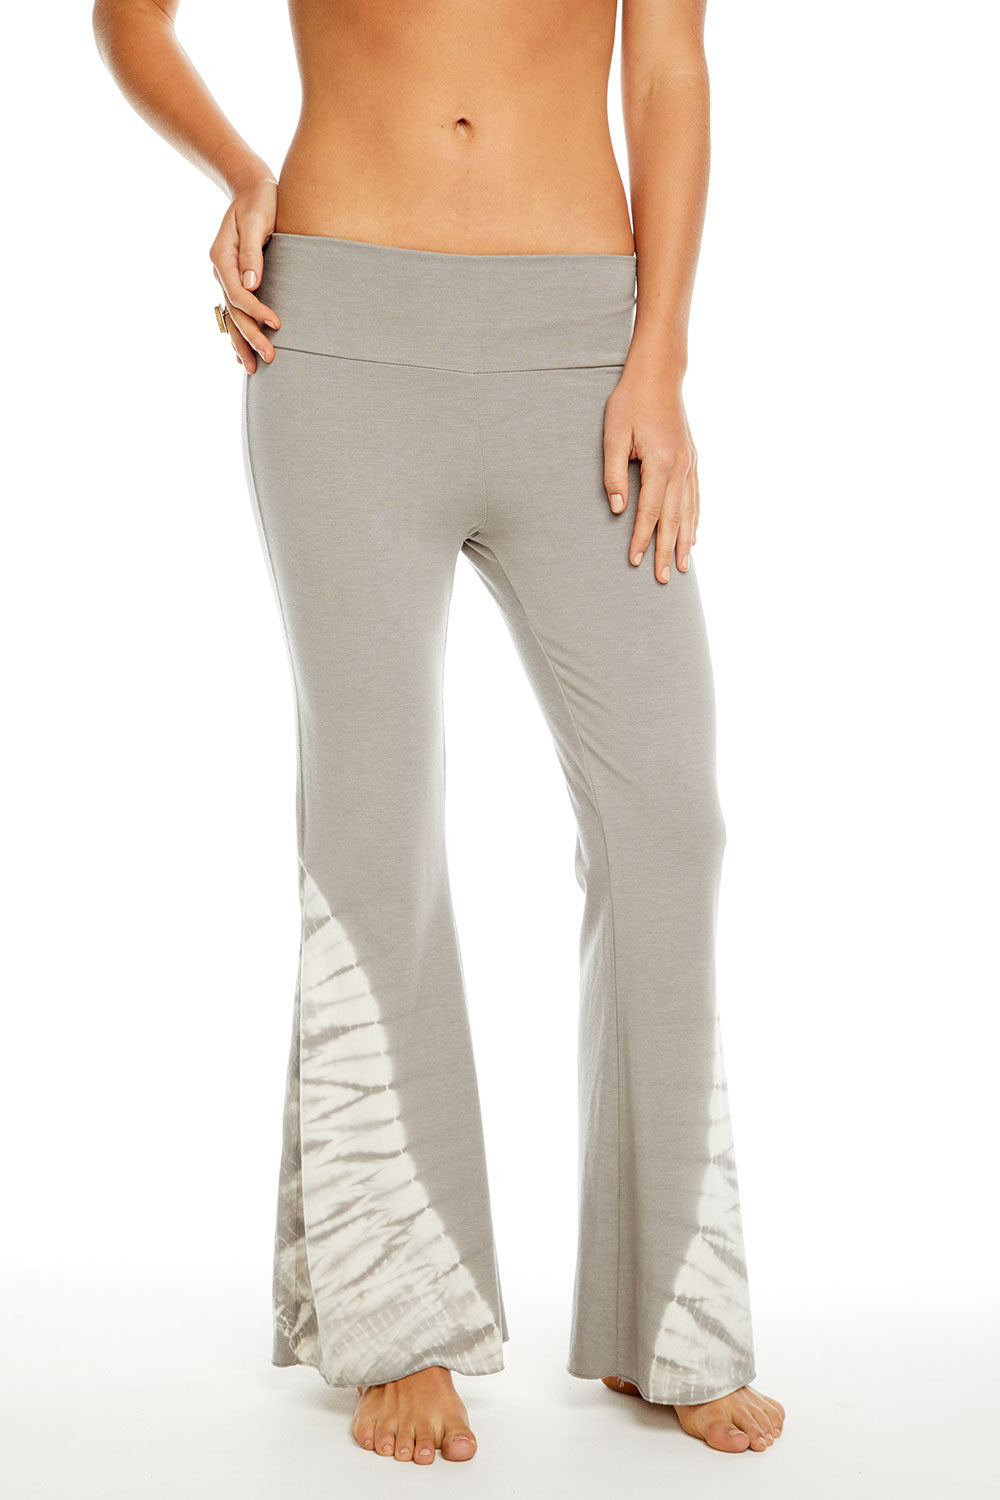 QUADRABLEND WIDE LEG LOUNGE PANT WOMENS chaserbrand4.myshopify.com